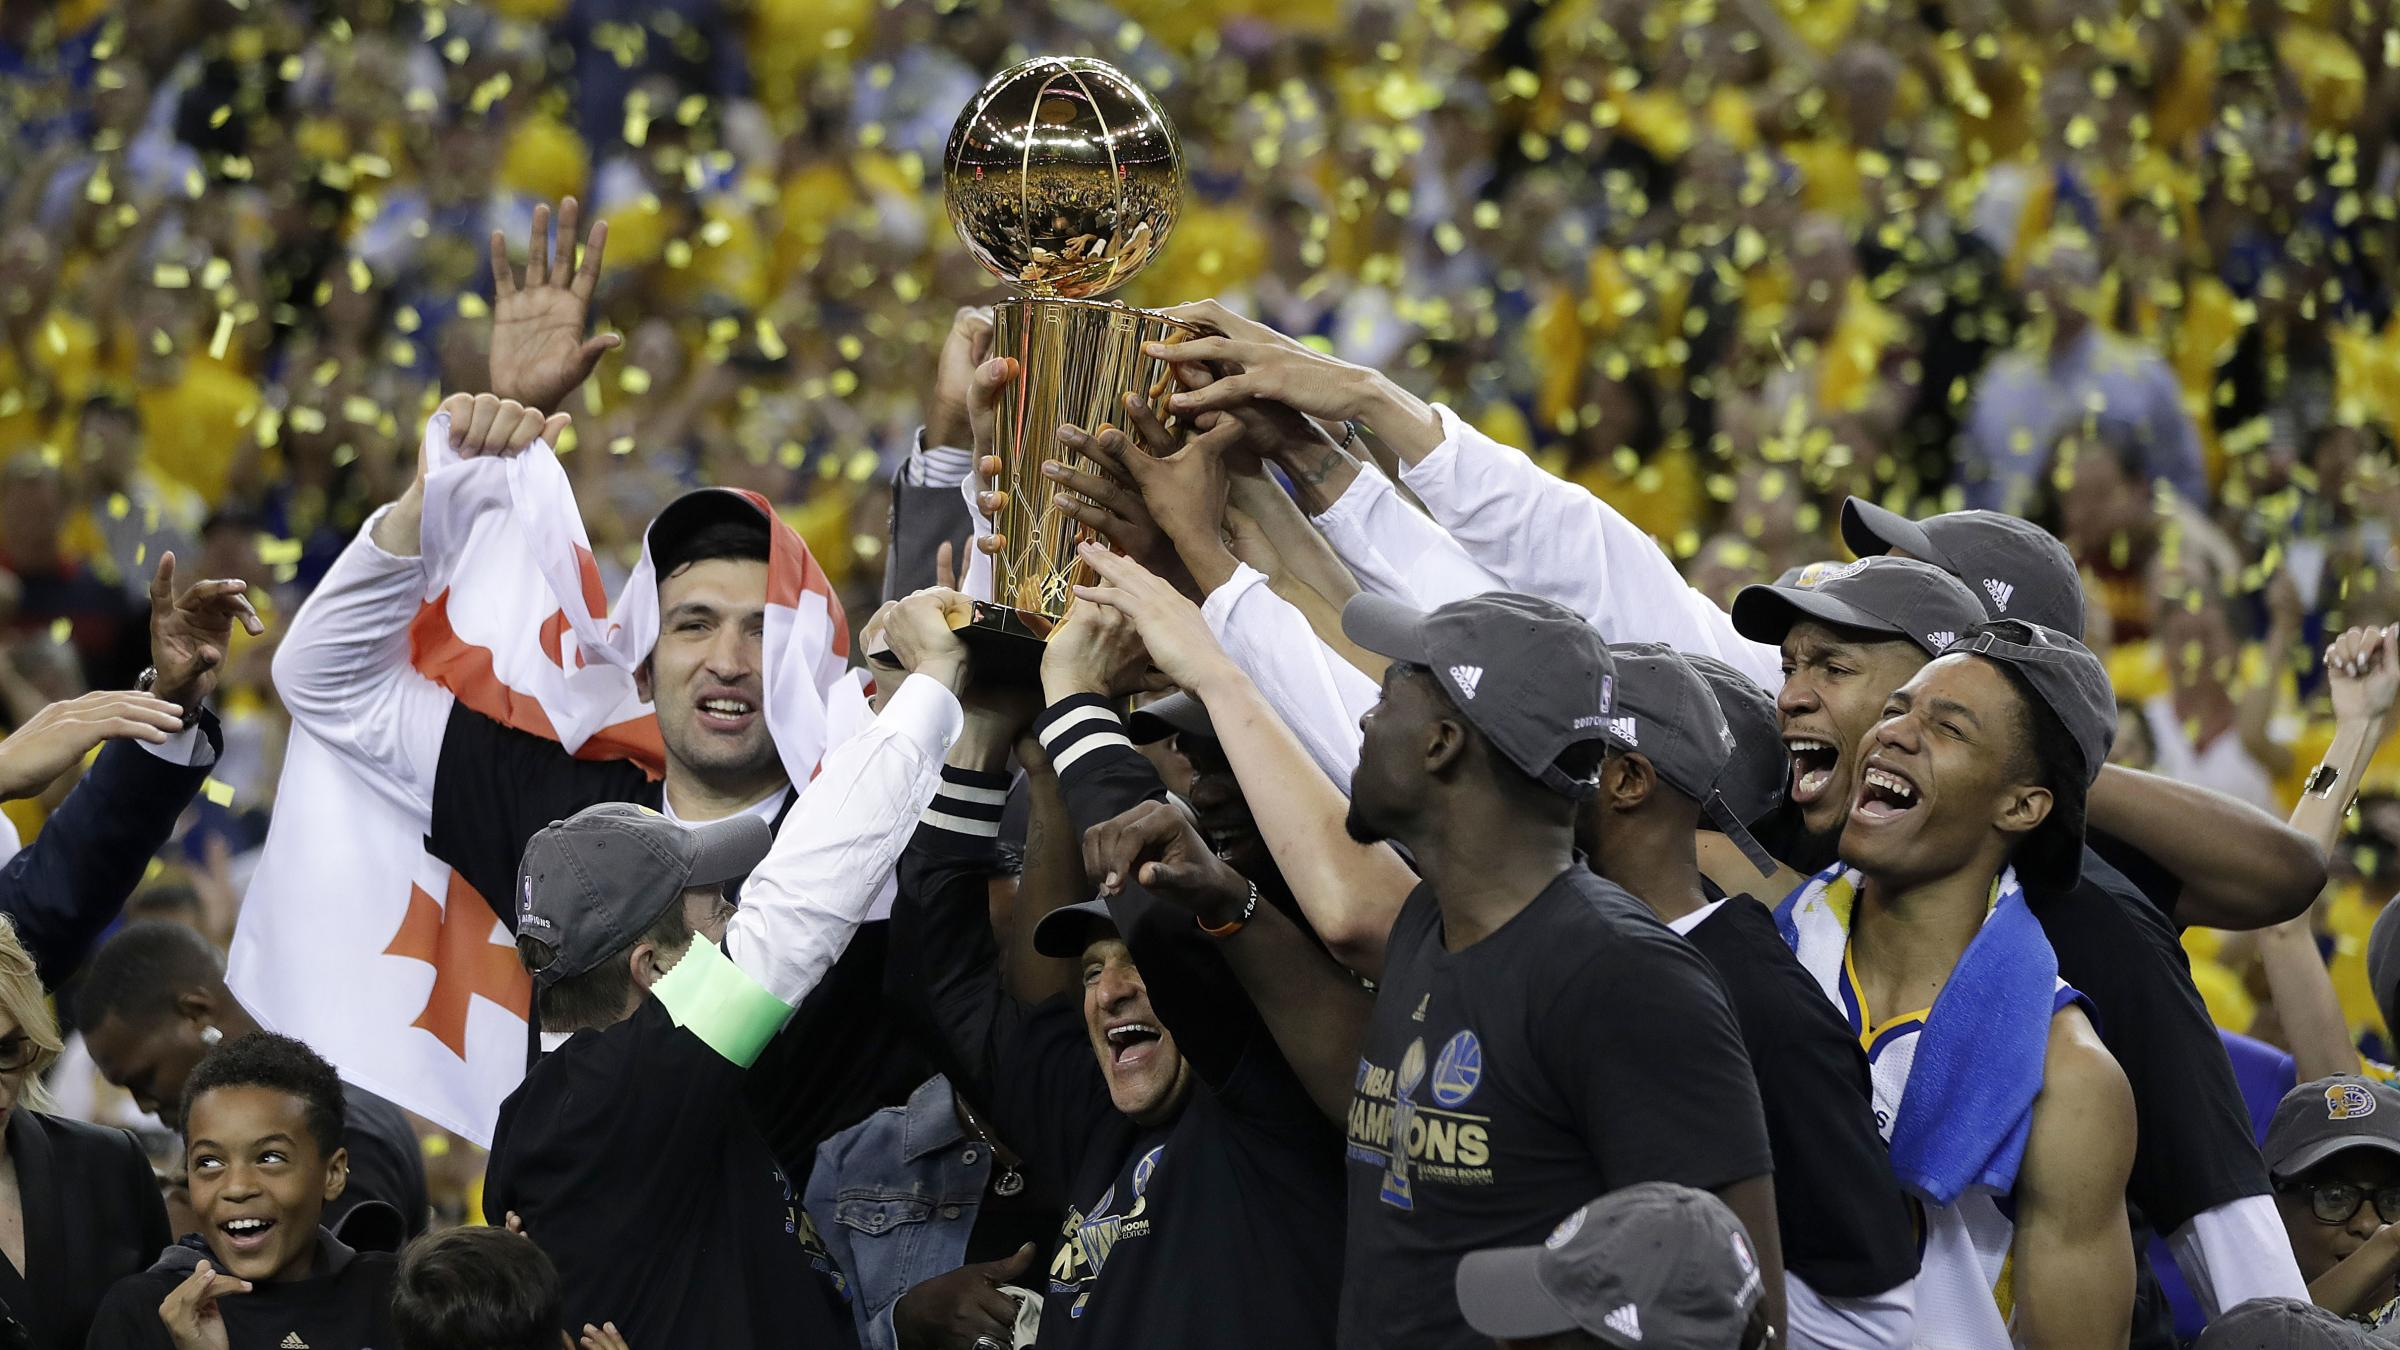 Golden State Warriors beat Cleveland Cavaliers to win NBA title